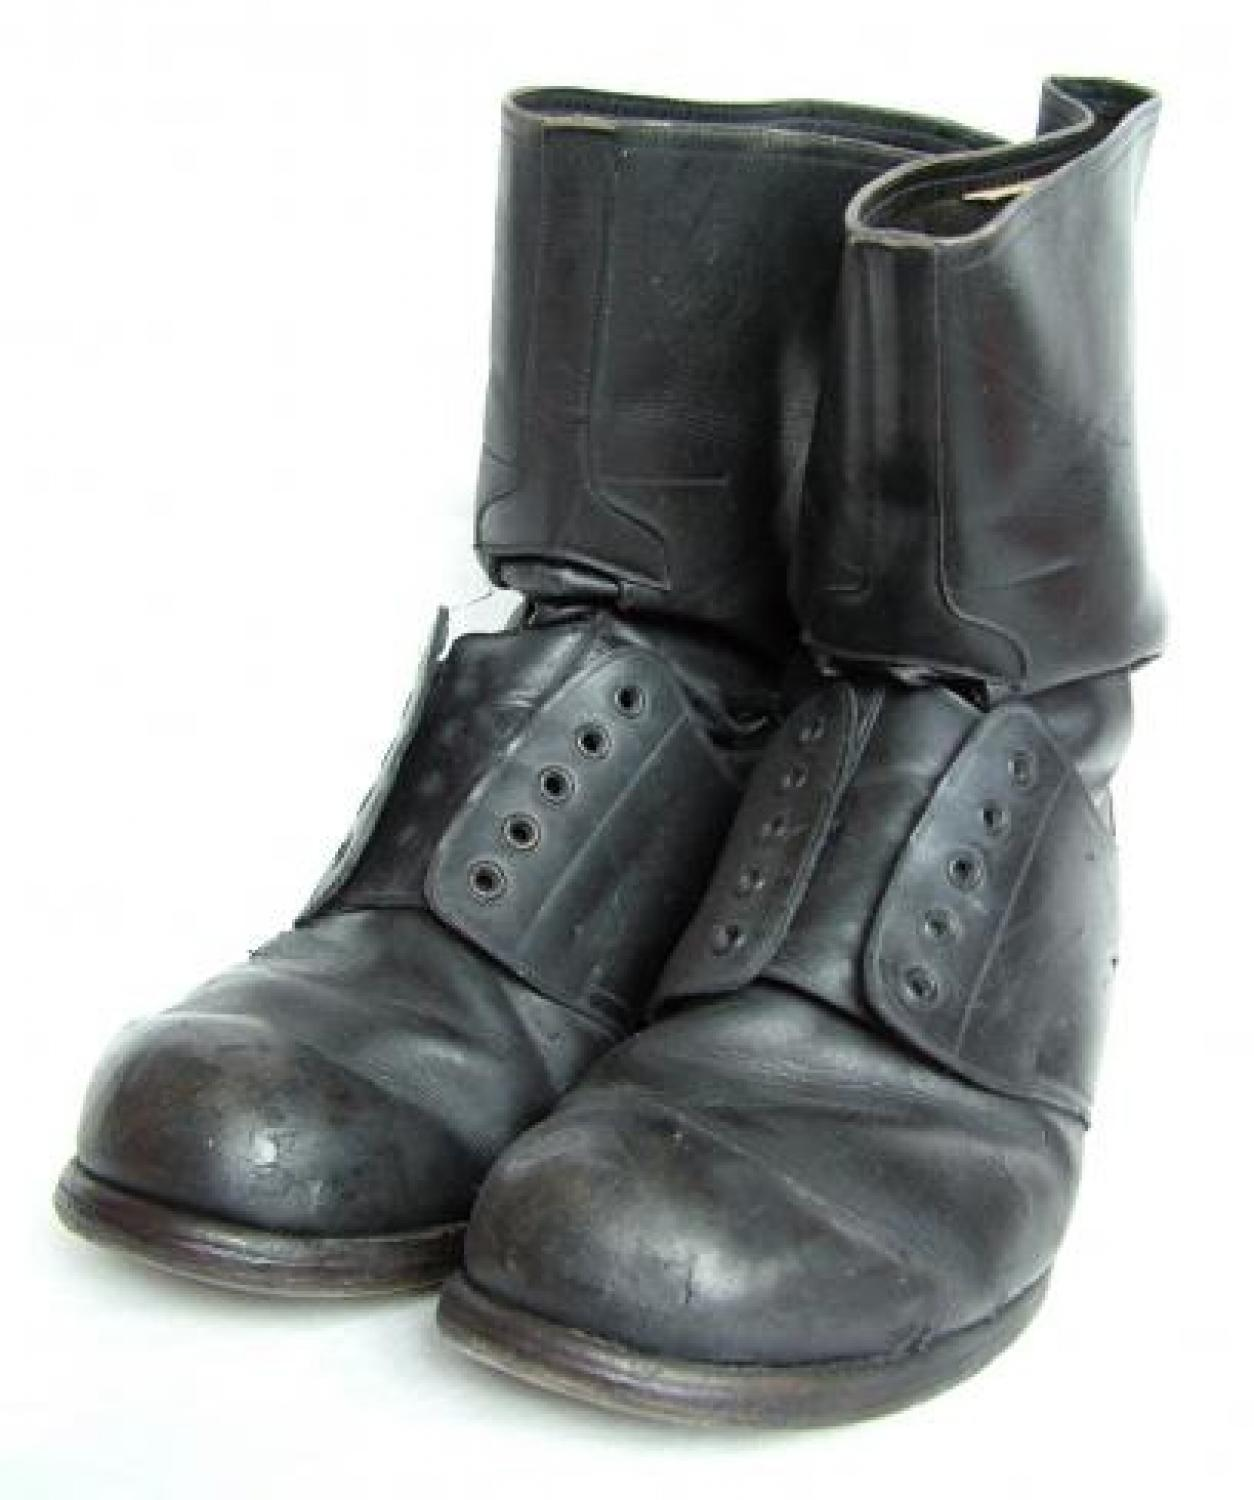 RAF 1952 Pattern 'Escape' Flying Boots